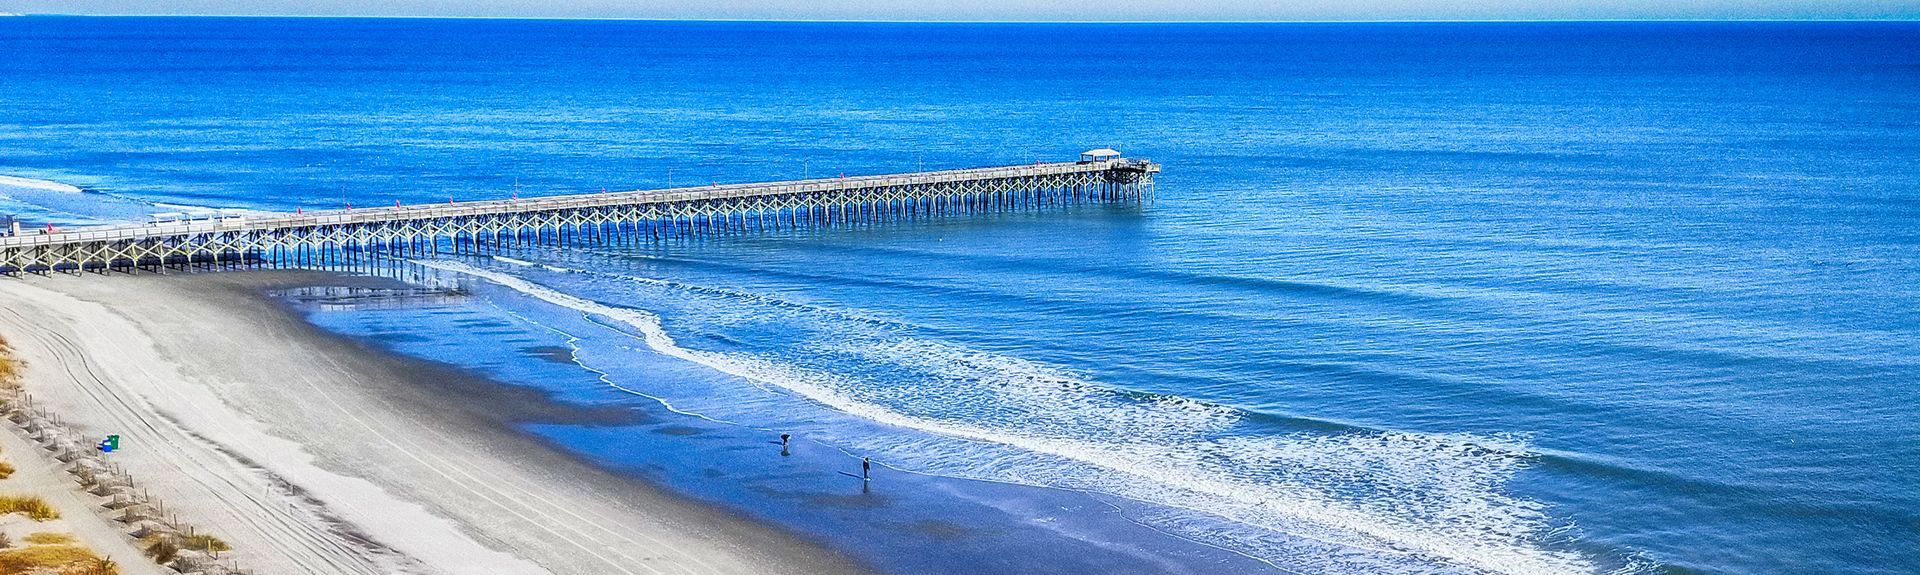 Oceans One, Myrtle Beach, SC, USA